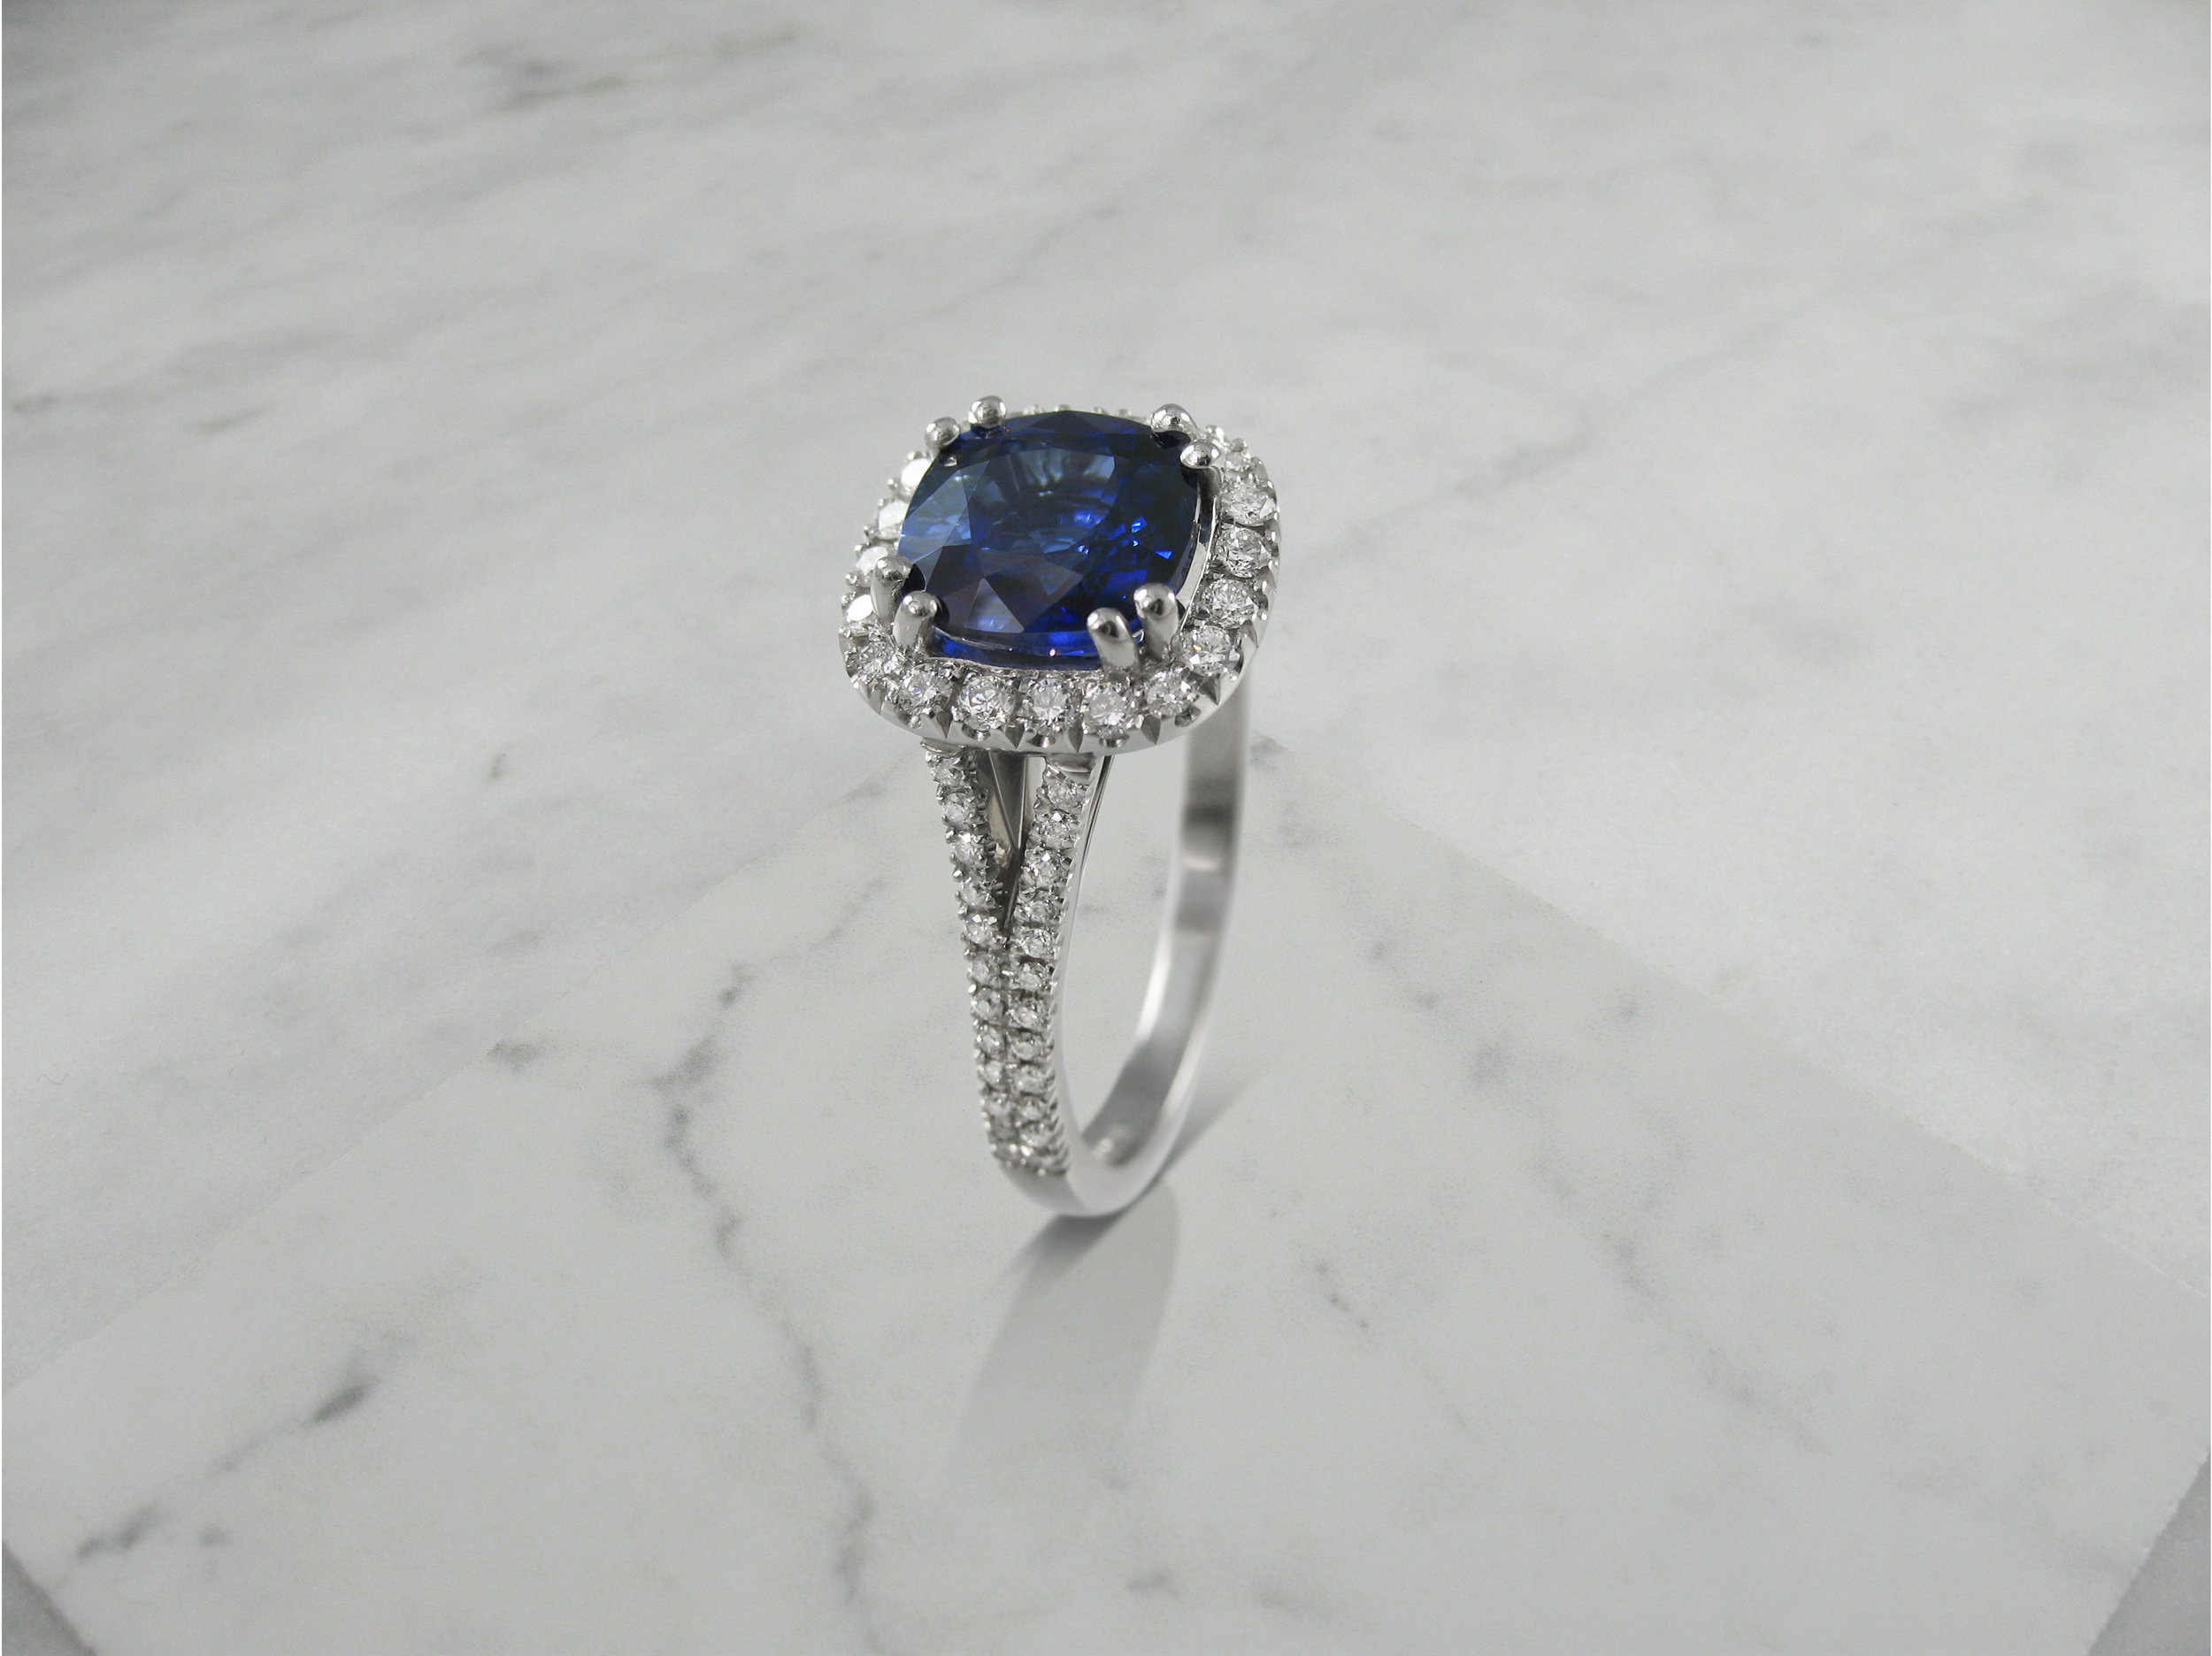 Cushion shaped sapphire and diamond halo engagement ring with split diamond band